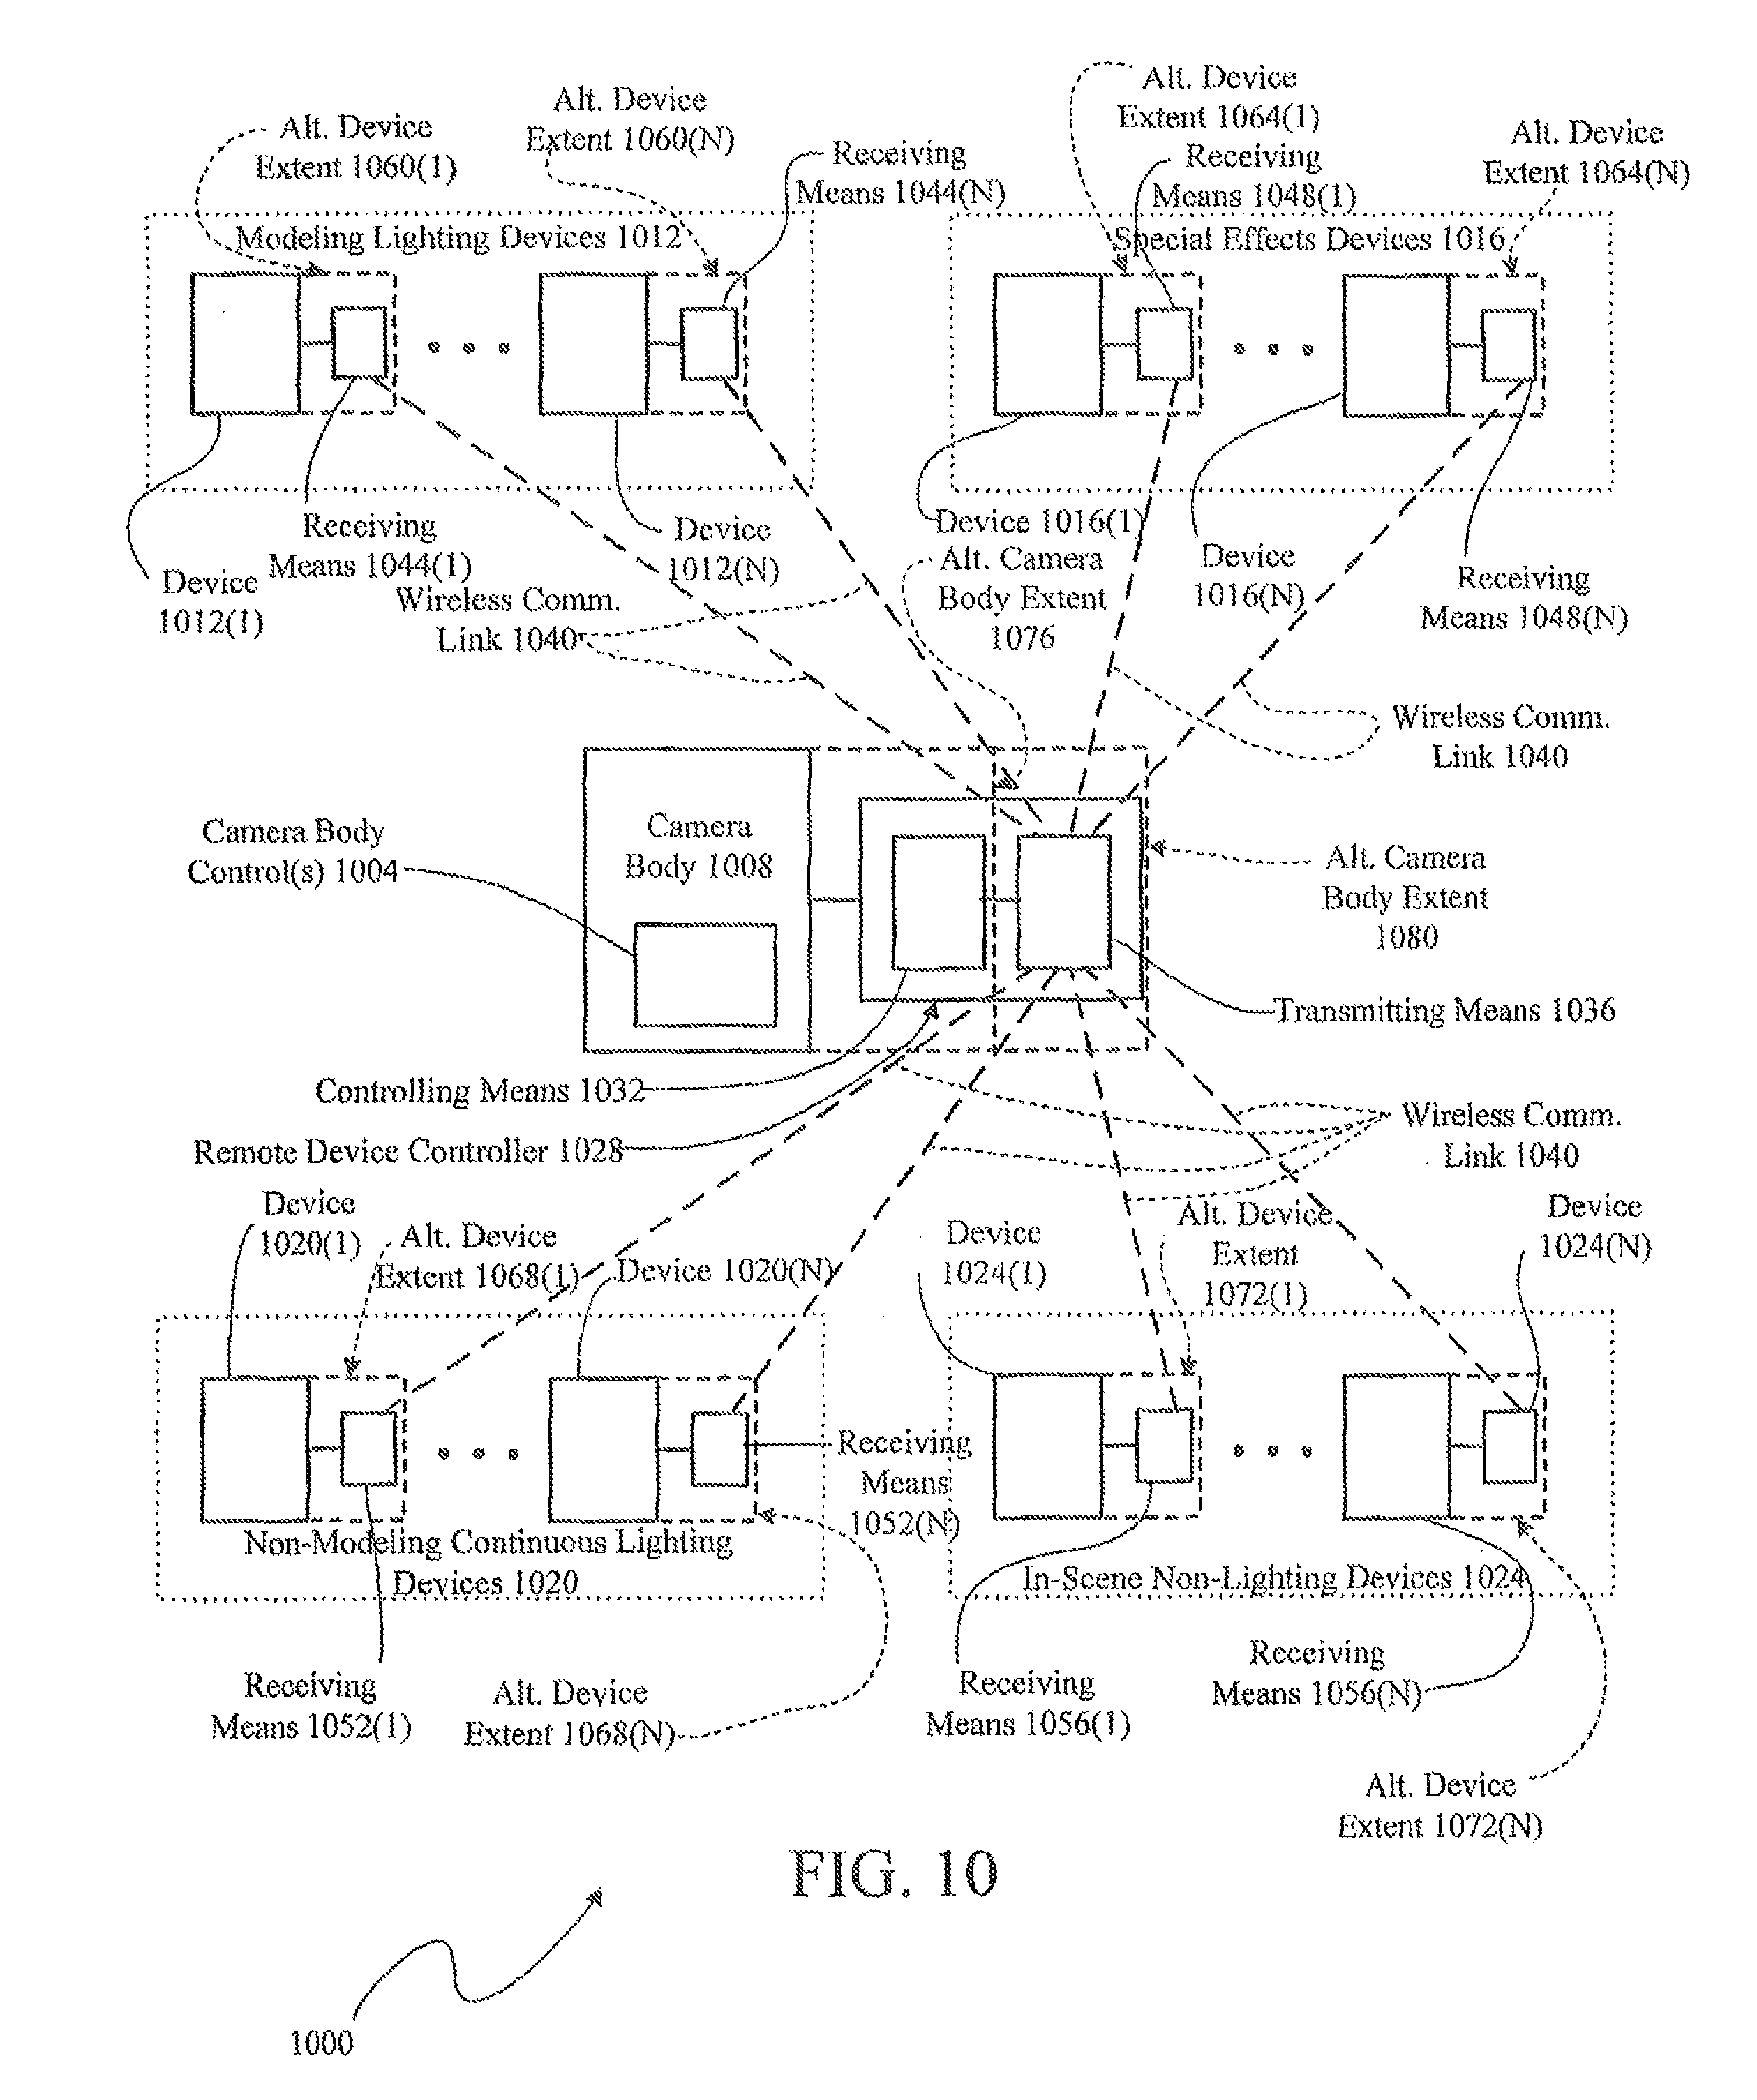 flashback wiring diagram online wiring diagram Loncin ATV Wiring Diagram flink wiring diagram wiring diagram databaseflashback wiring diagram wiring diagram database wiring mess camera body diagram